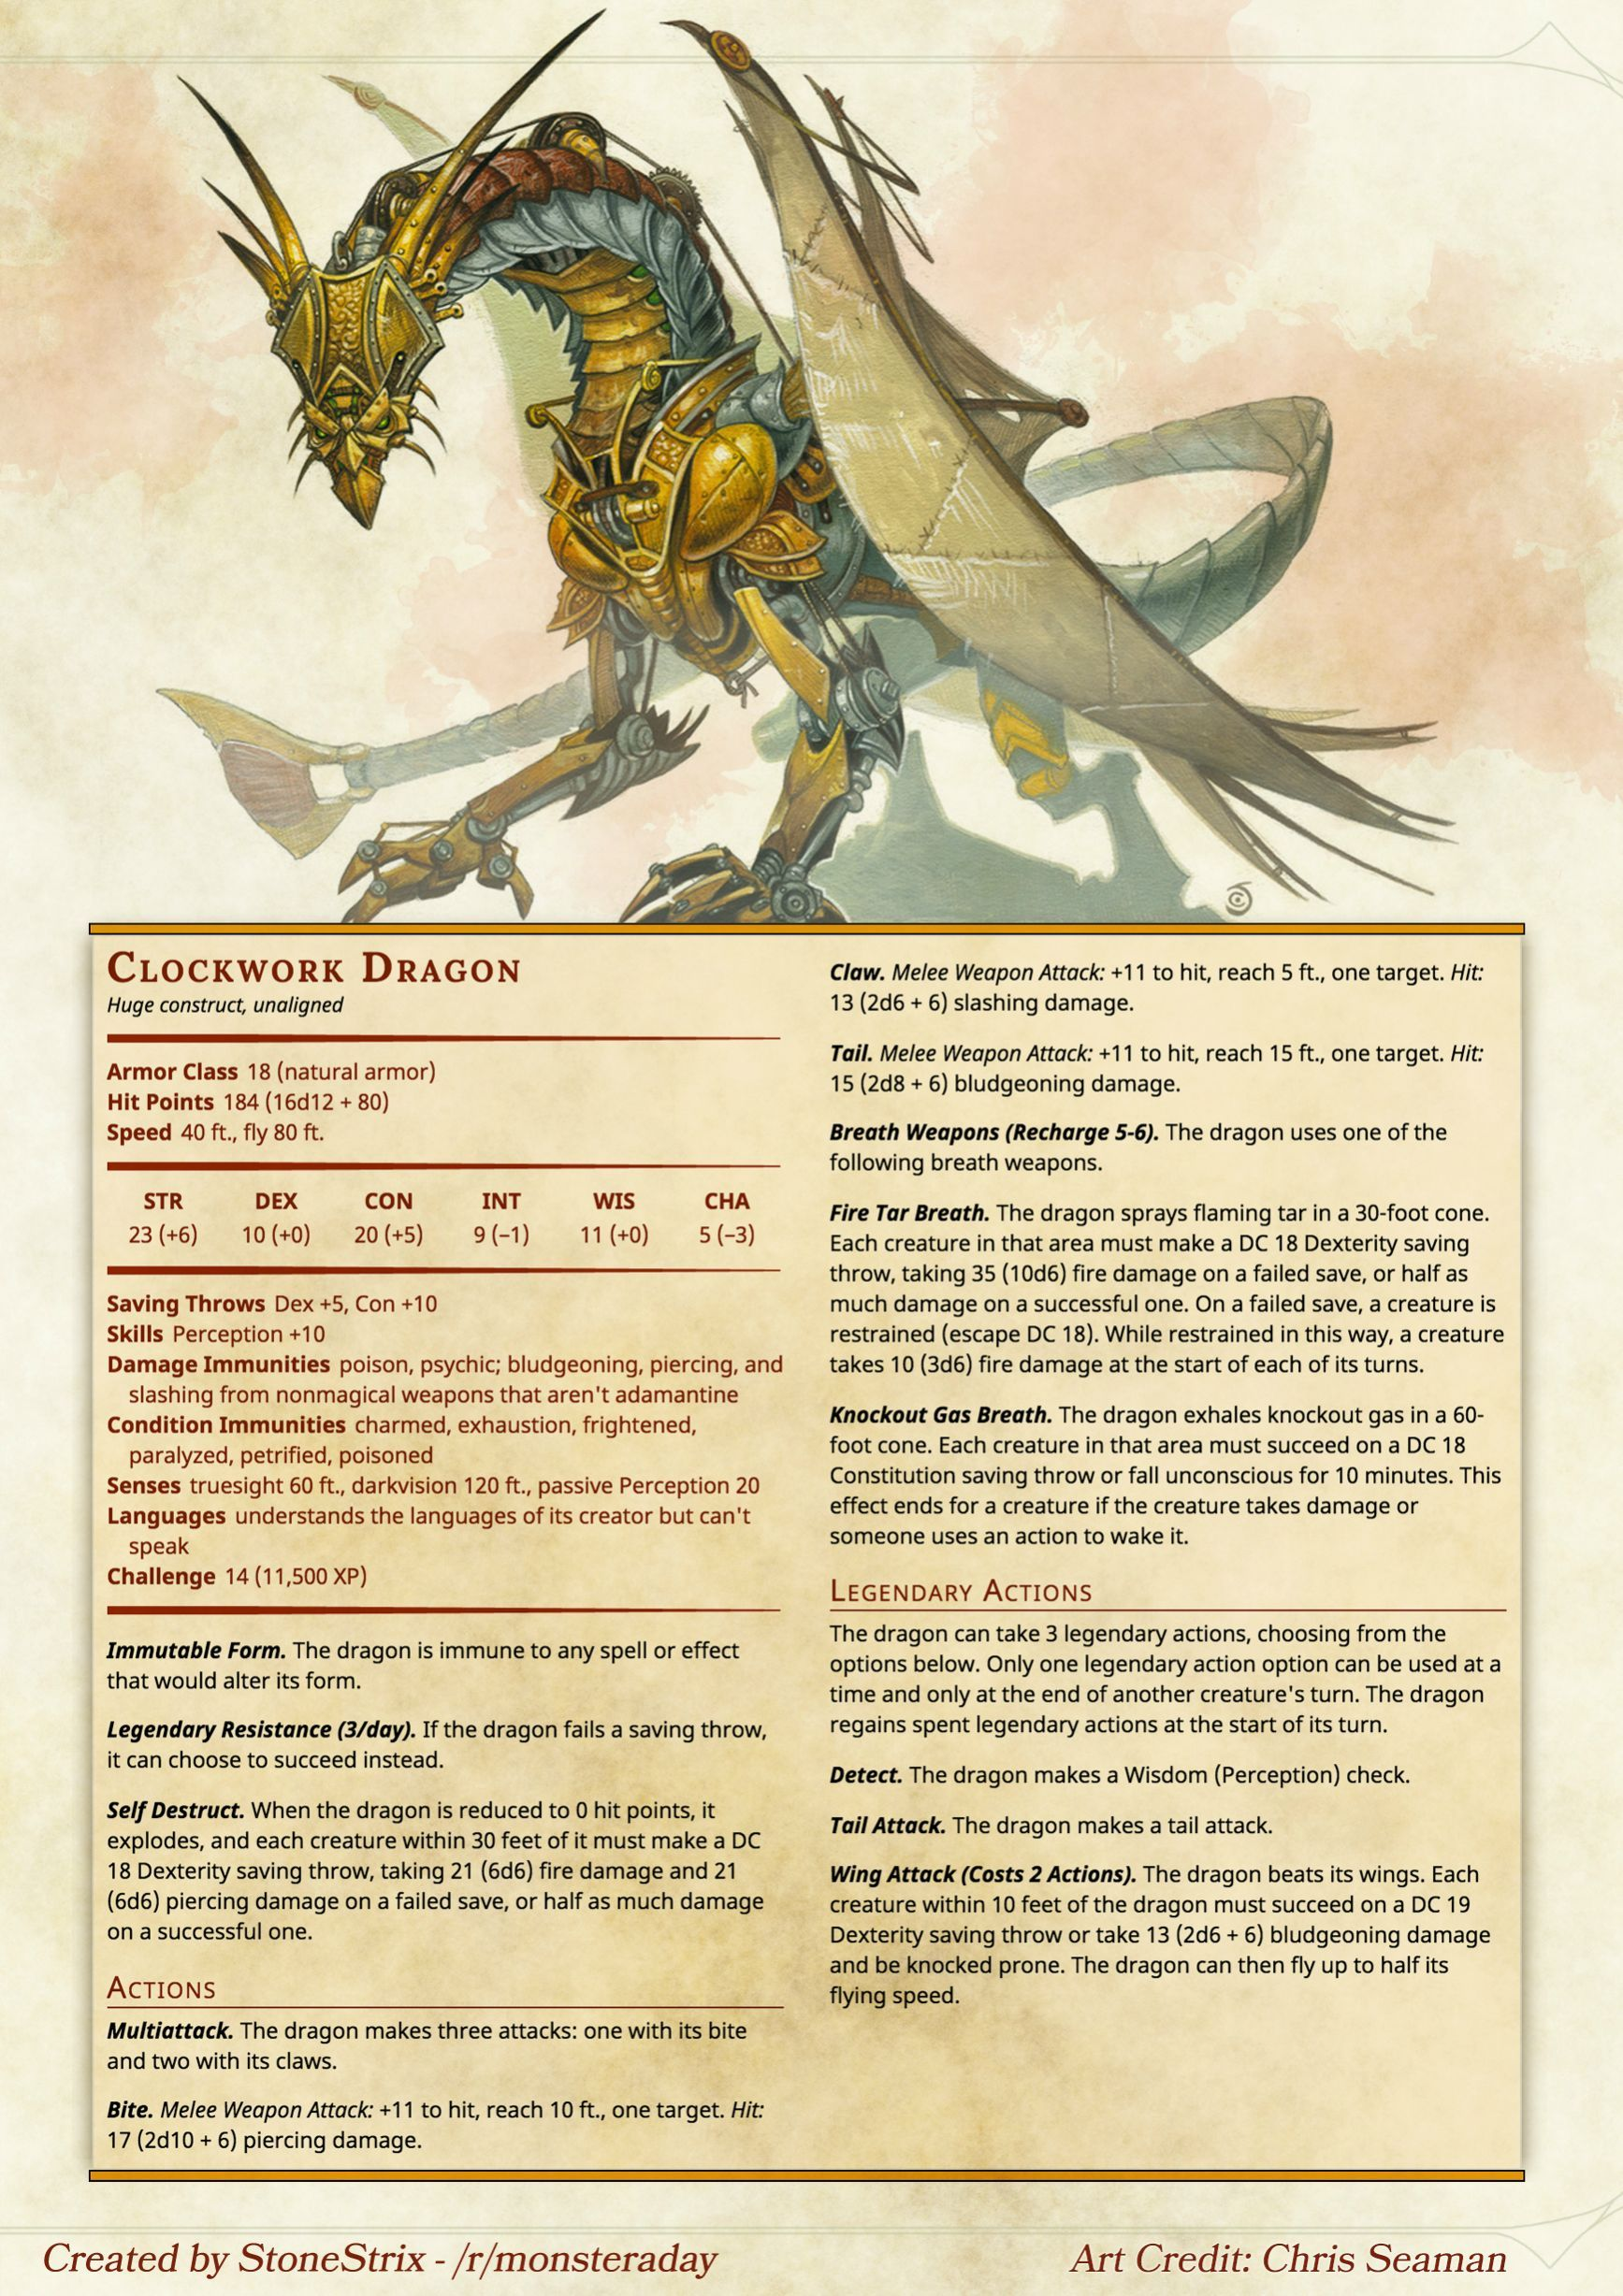 Clockwork Dragon Dnd Dnd 5e Homebrew Dnd Monsters Dnd Dragons